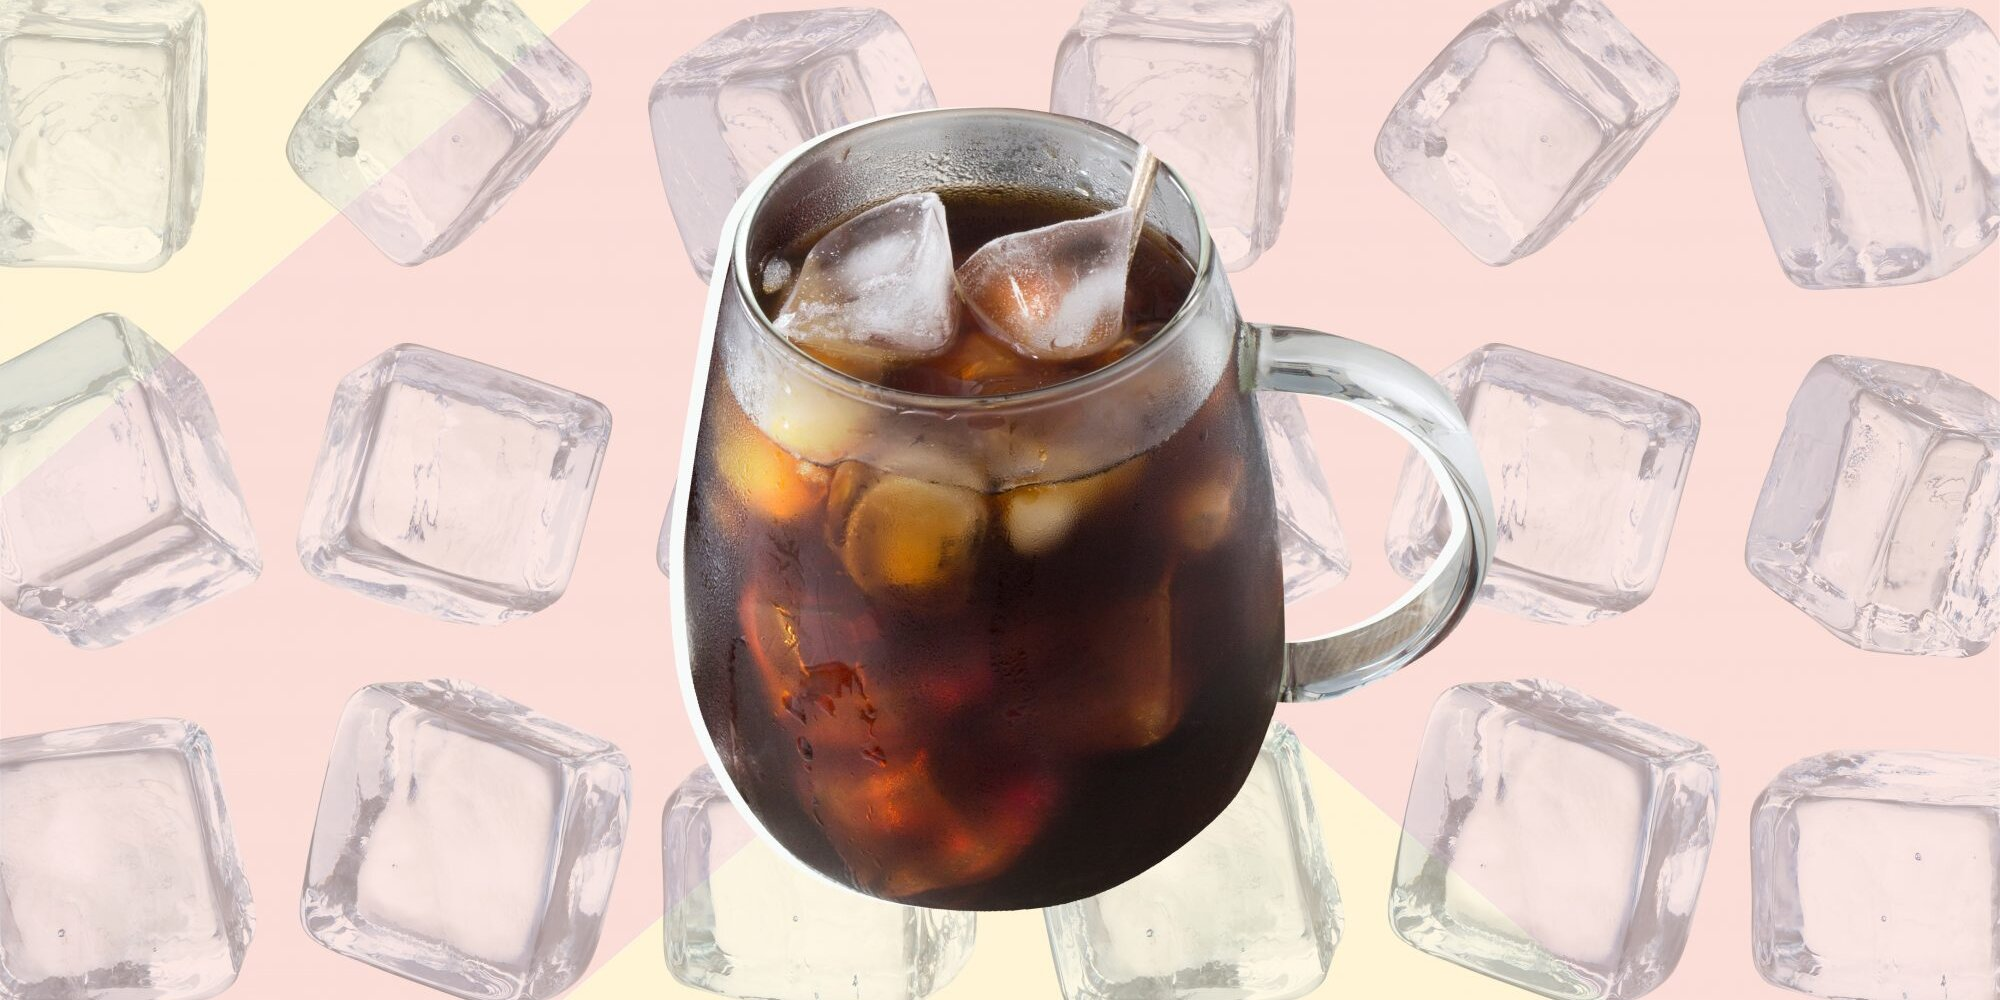 i tried making cold brew coffee 3 ways read on for the results